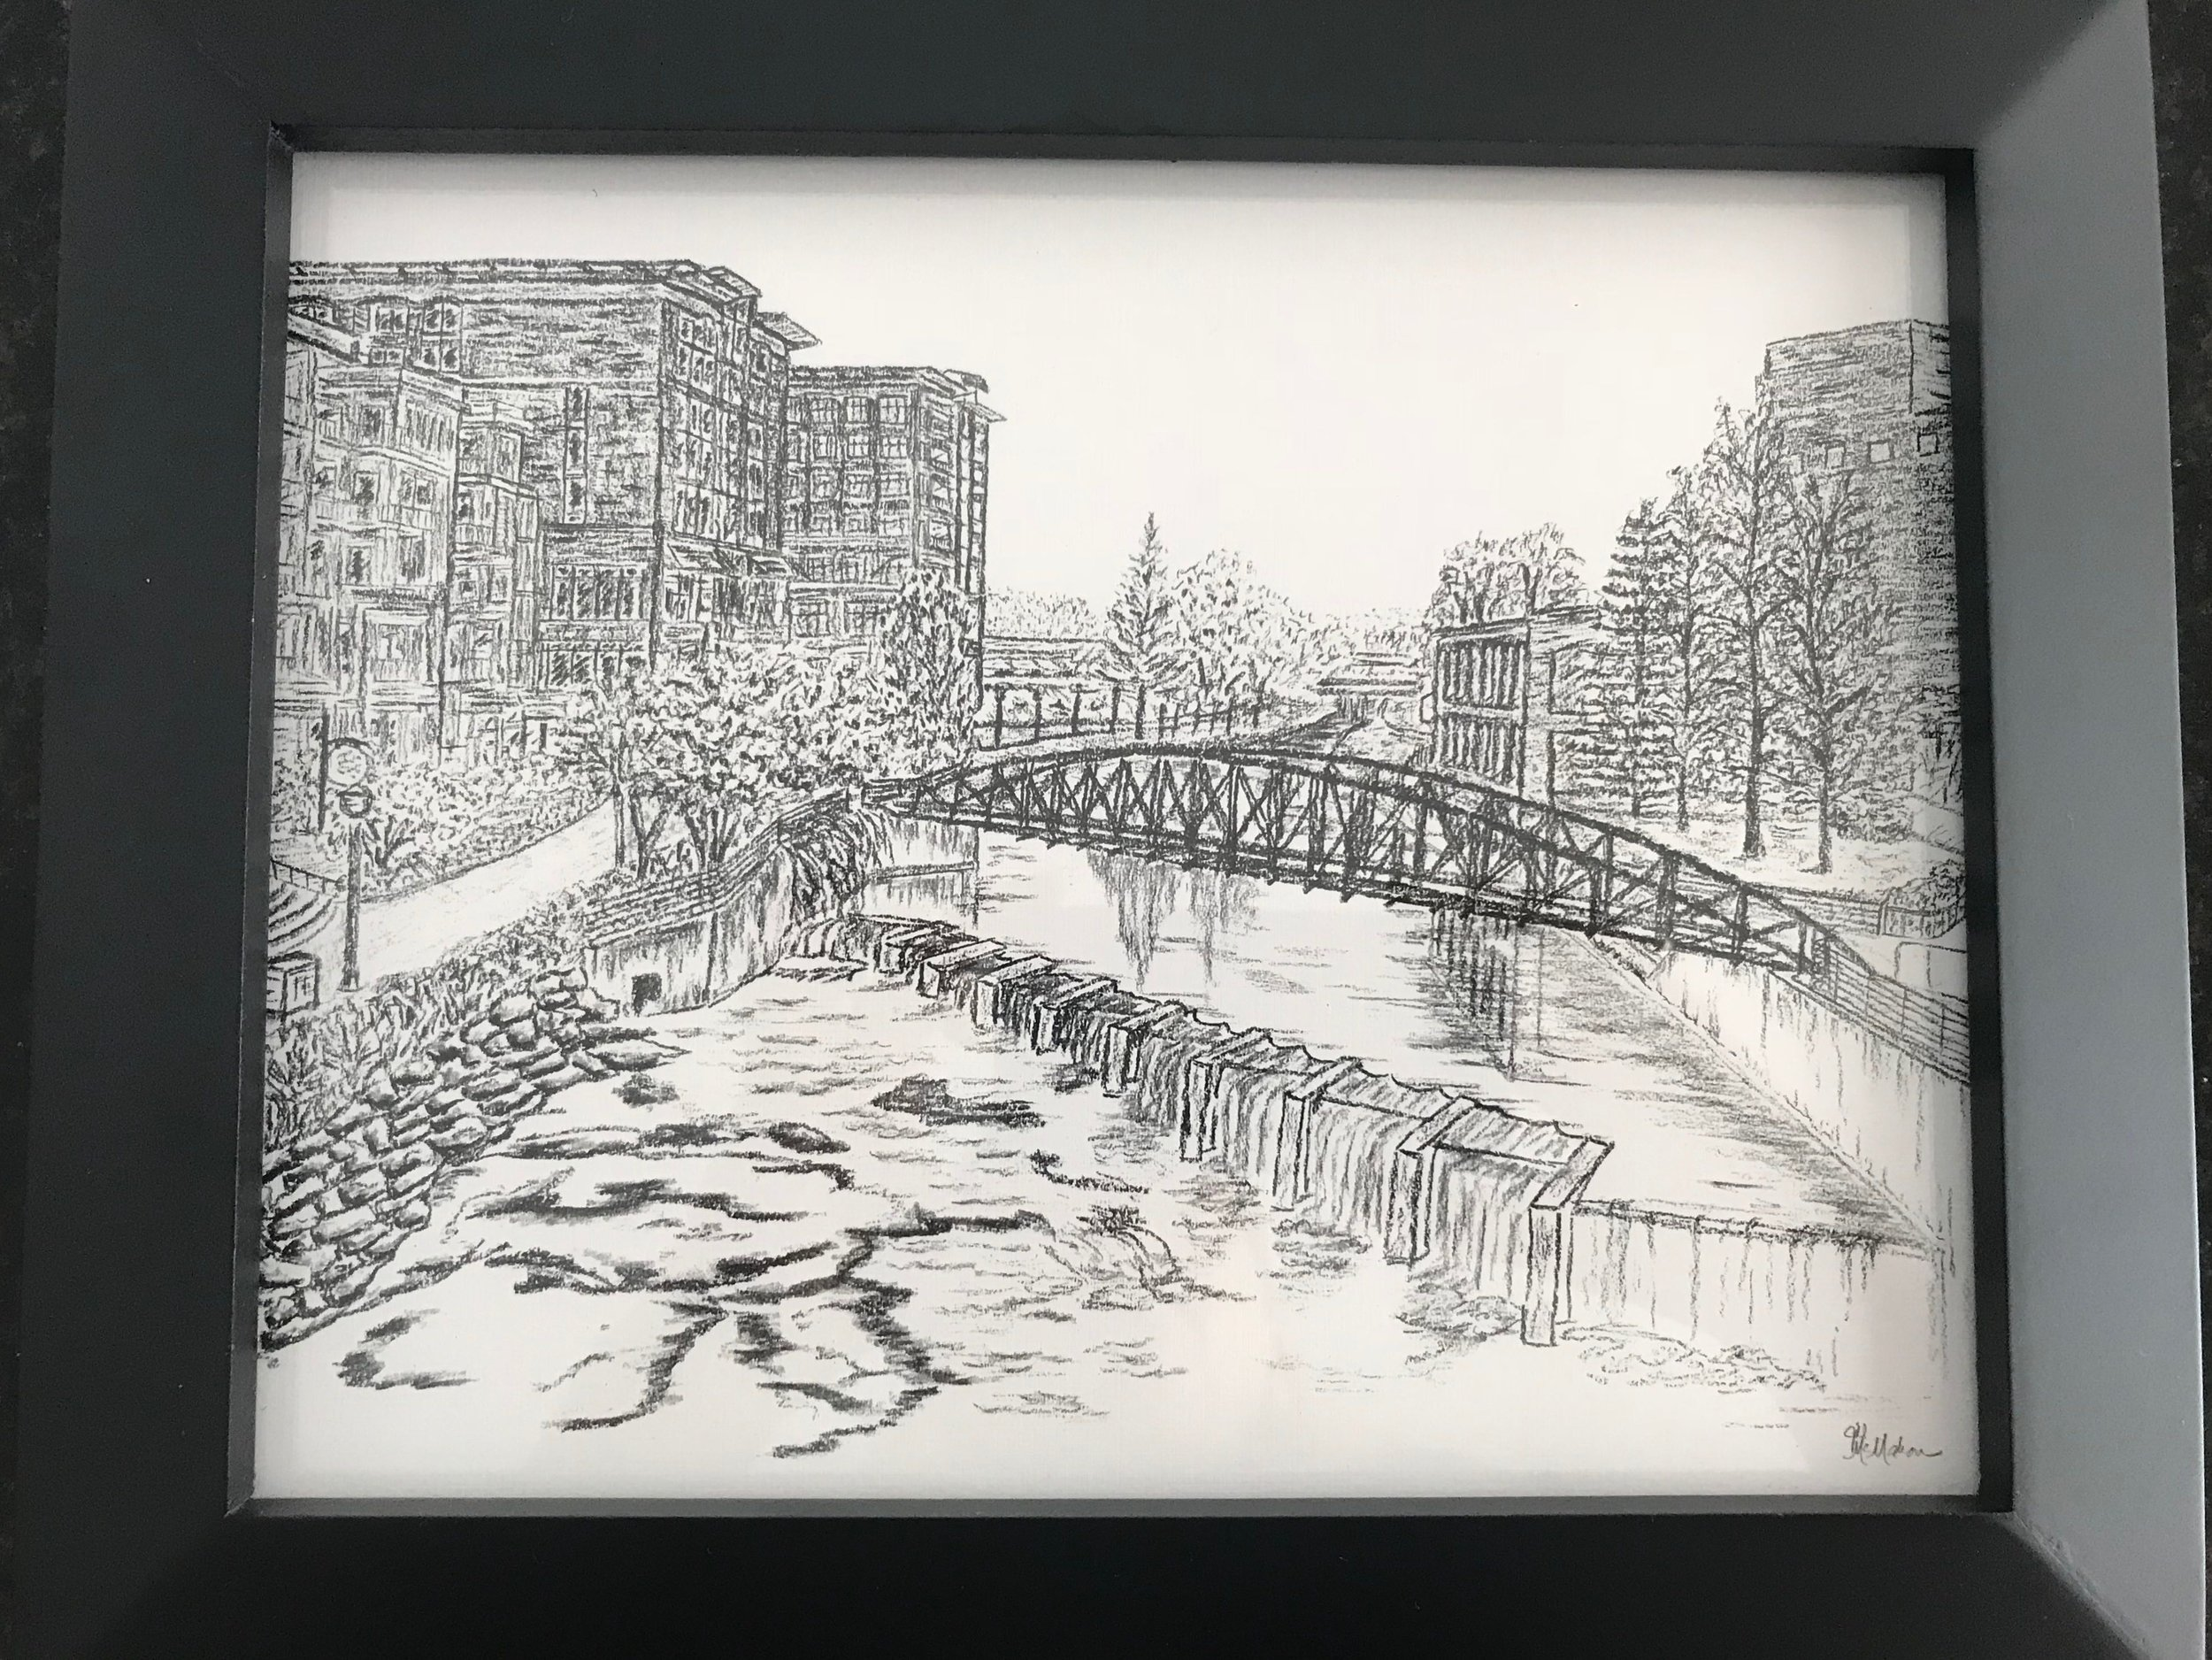 REEDY RIVER CHARCOAL PRINT   Decorate your home with this framed 8x10 print of a charcoal drawing of the iconic Greenville landmark - Reedy River.  DONOR: Jill McMahon VALUE: $60